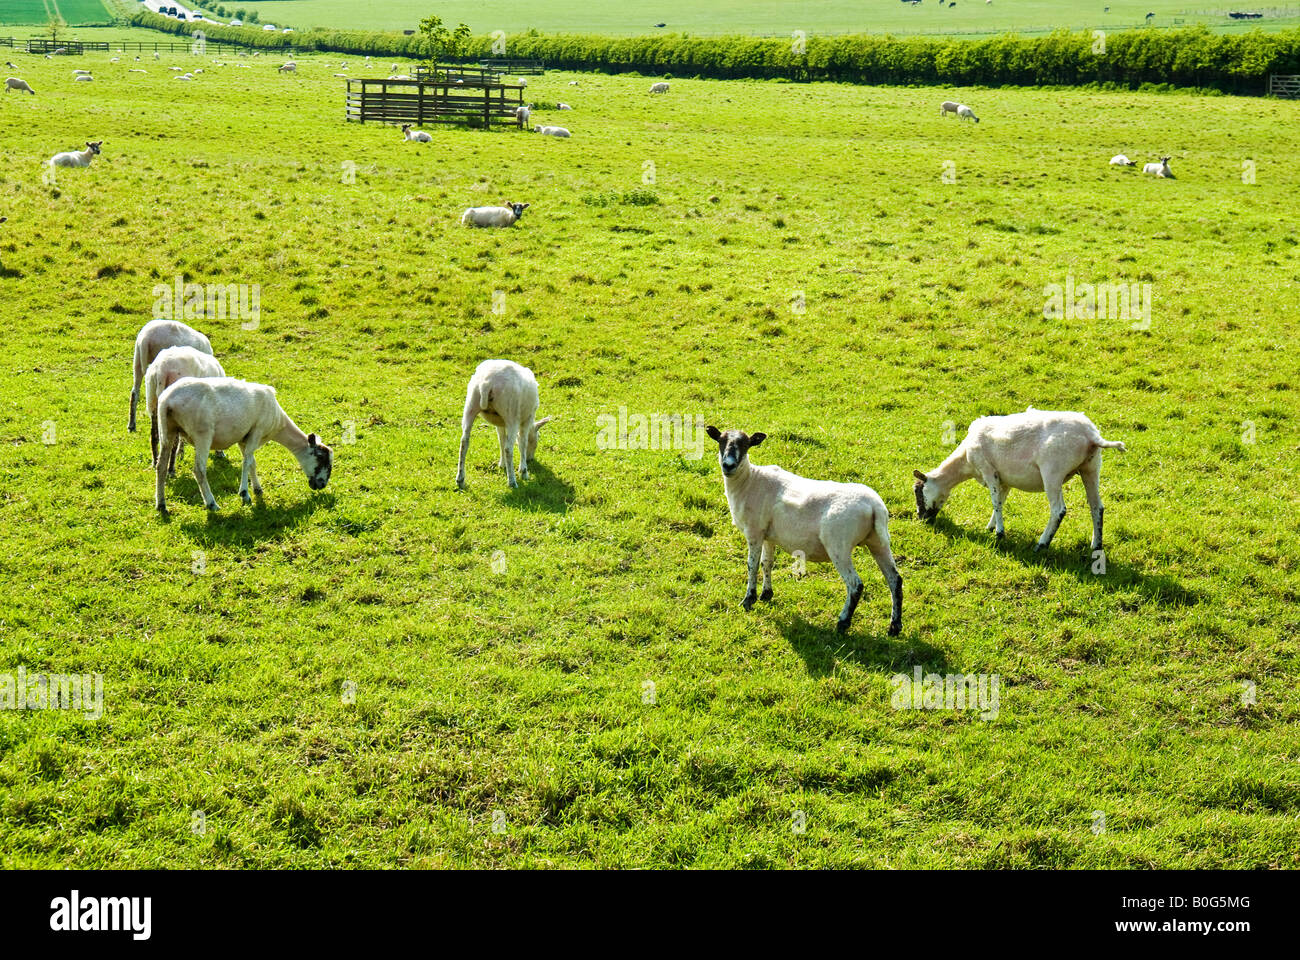 Shorn sheep in a Wiltshire field in May - Stock Image